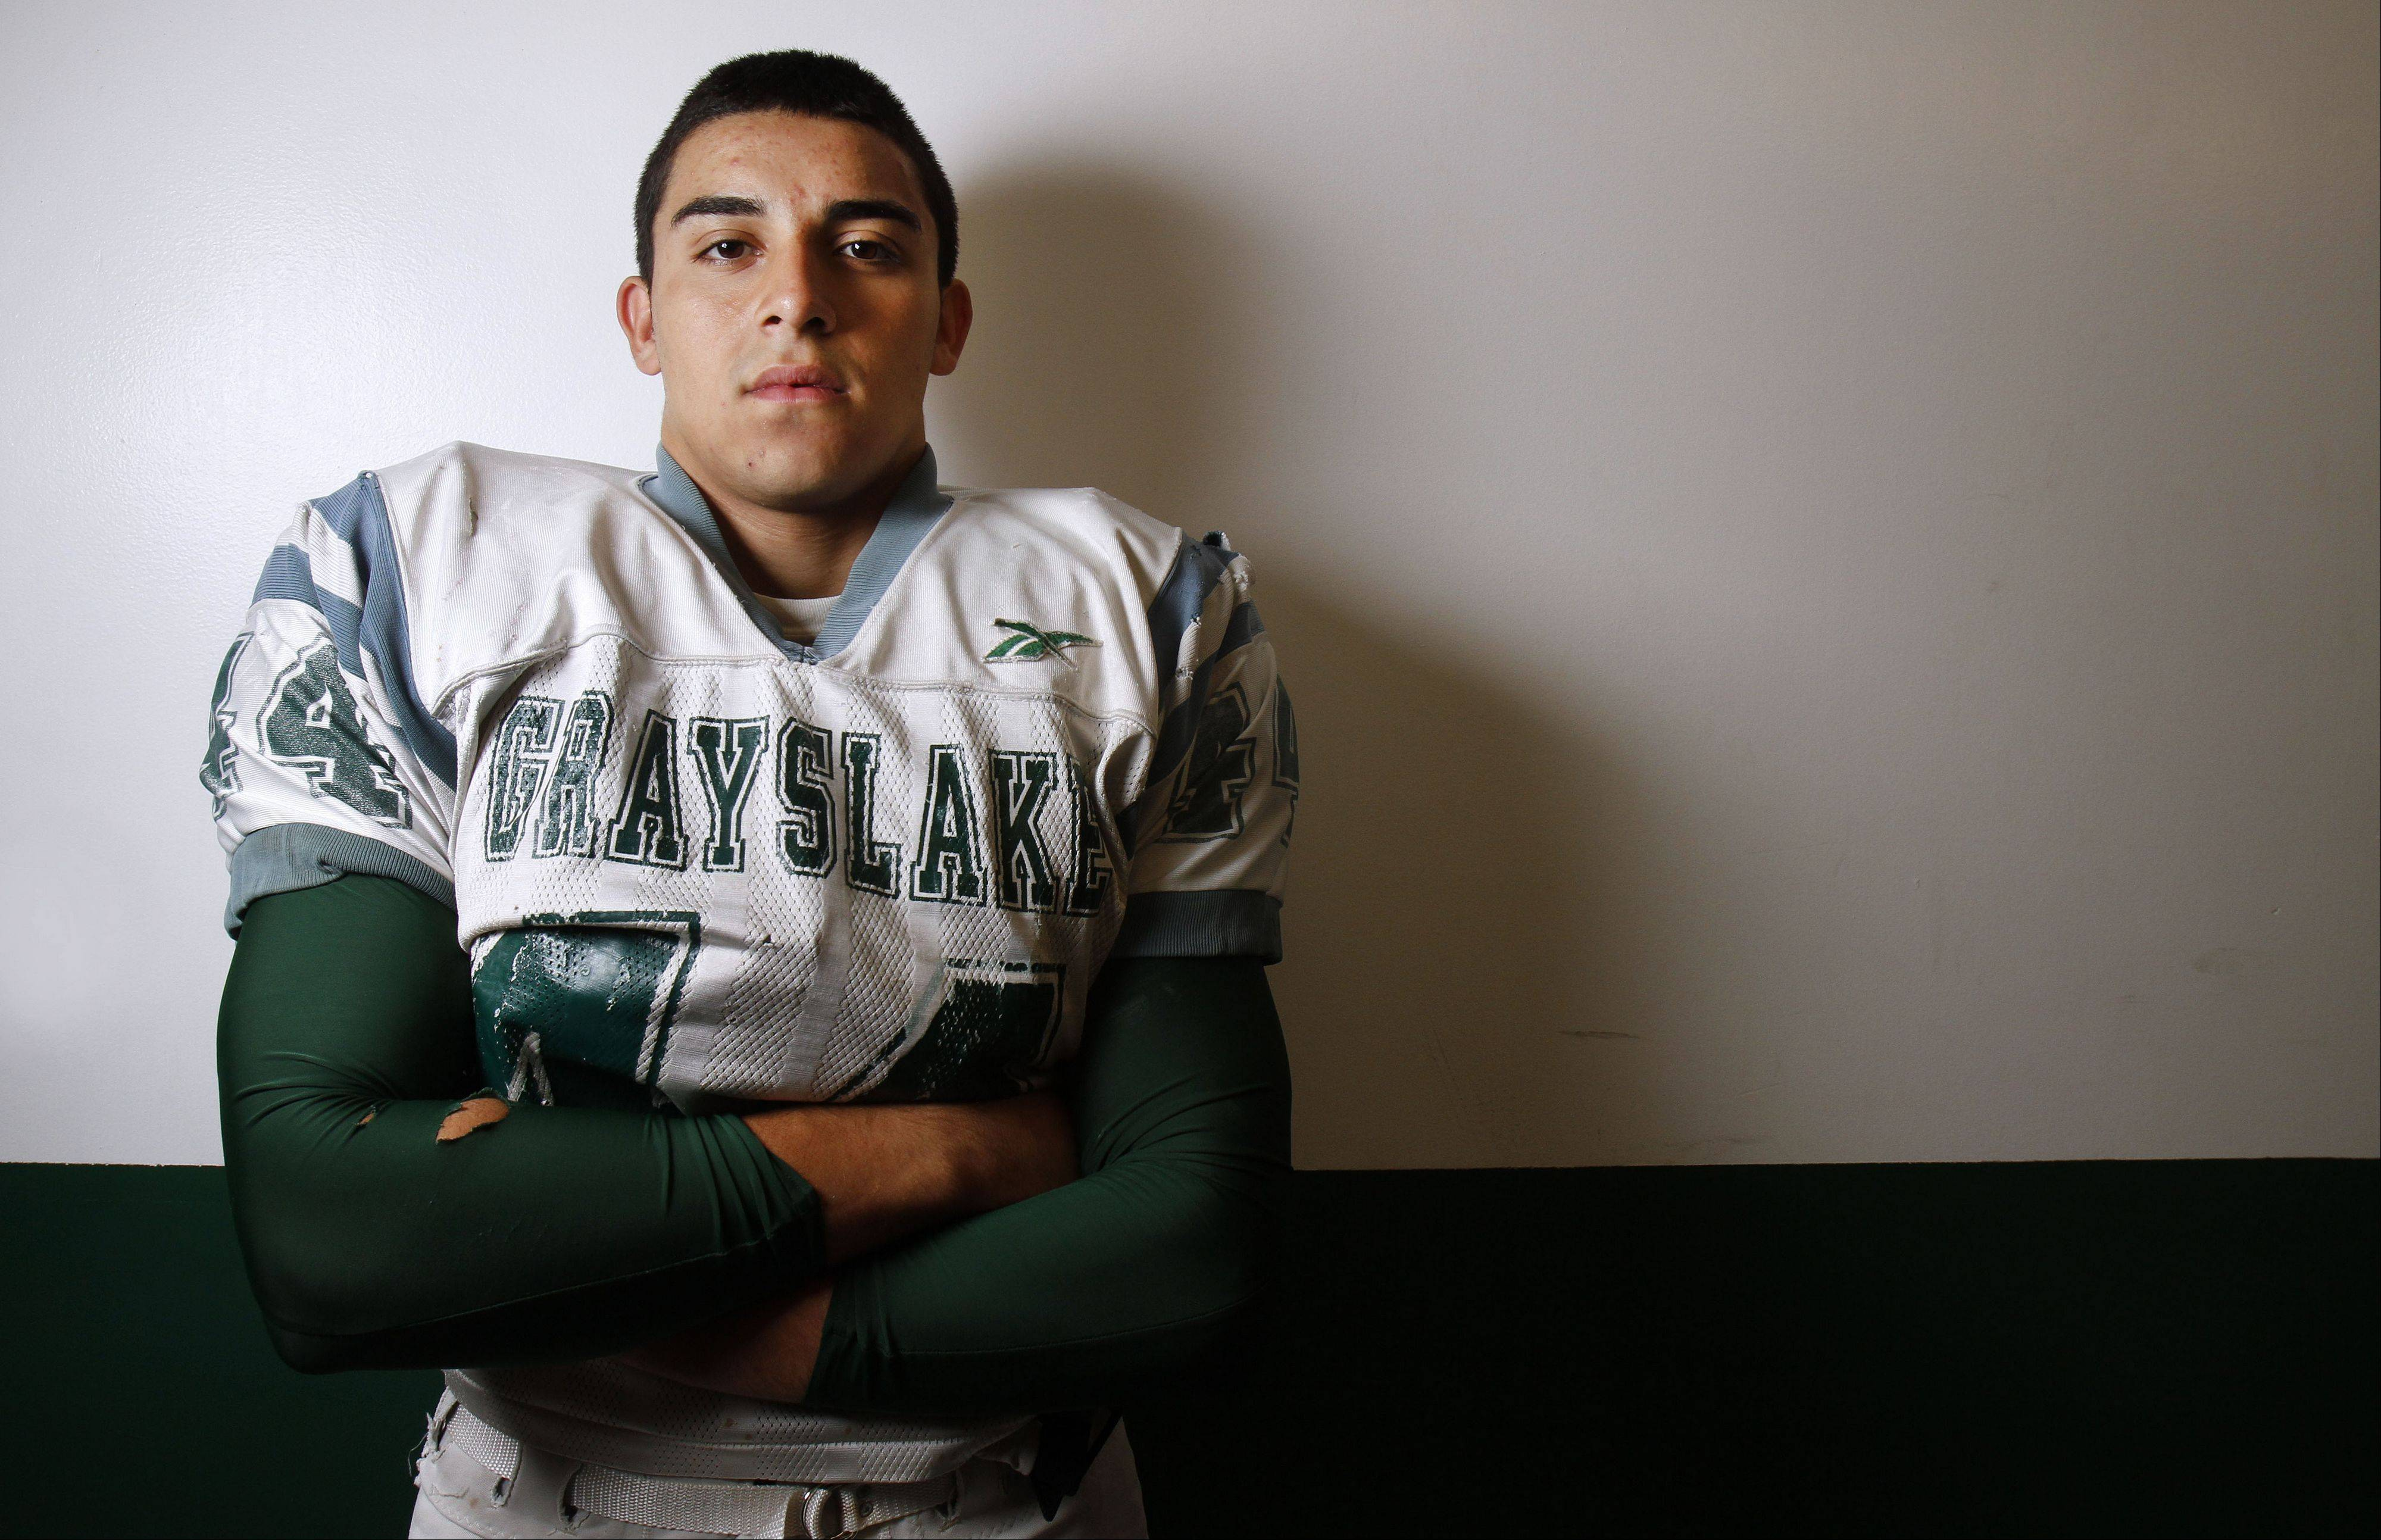 Grayslake Central's Joey Valdivia was a rare standout in three sports -- football, wrestling and track and field. Rarer still, in his senior year he earned all-state accolades in each sport.